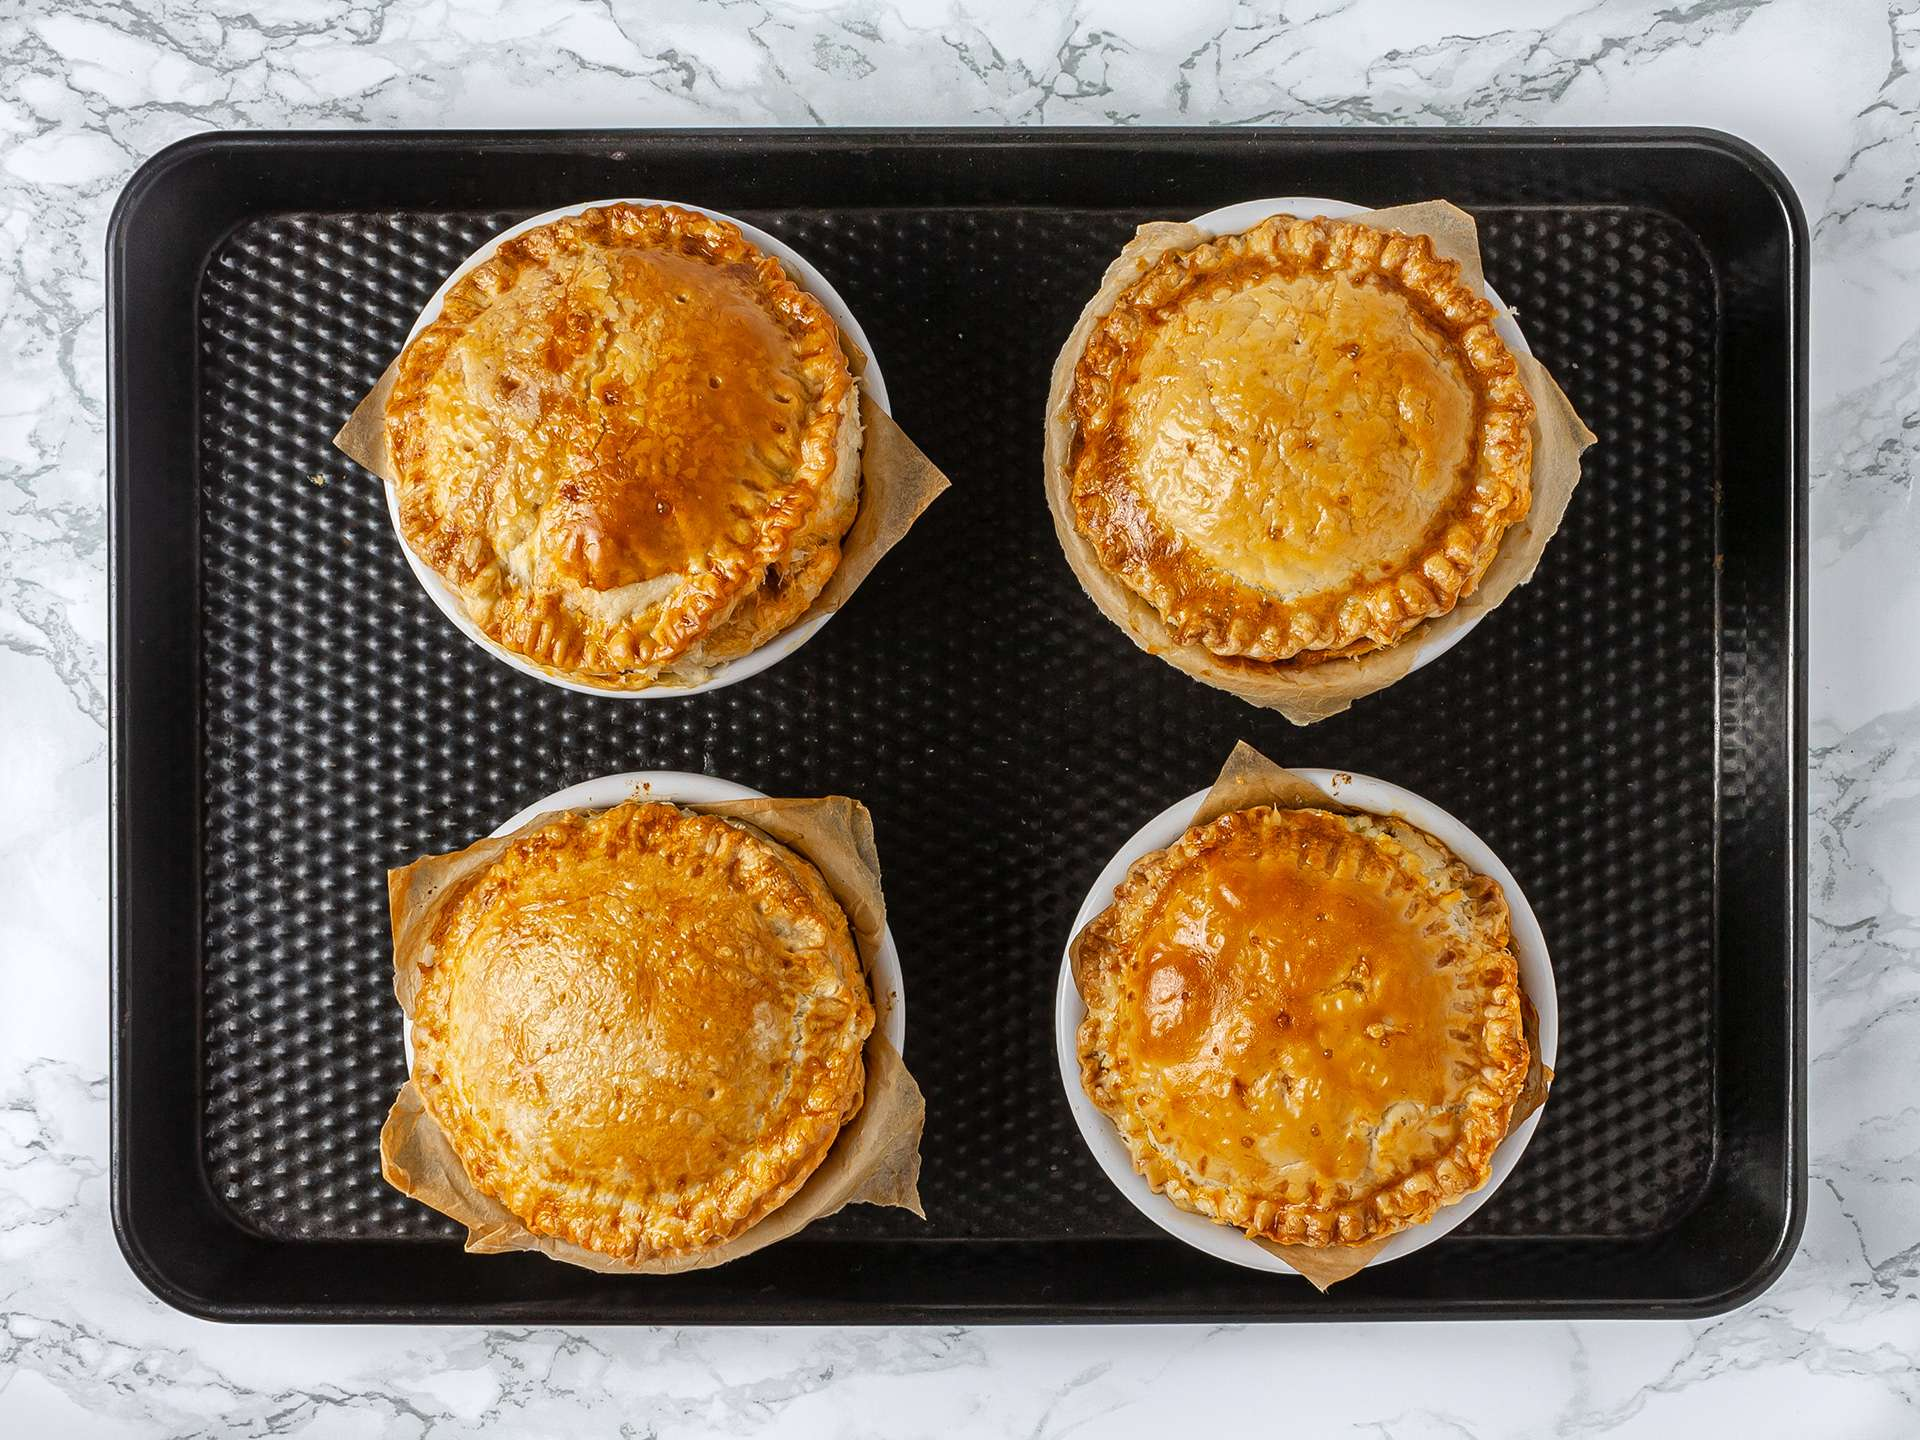 Single portion mince lamb pies baked in the oven on a tray